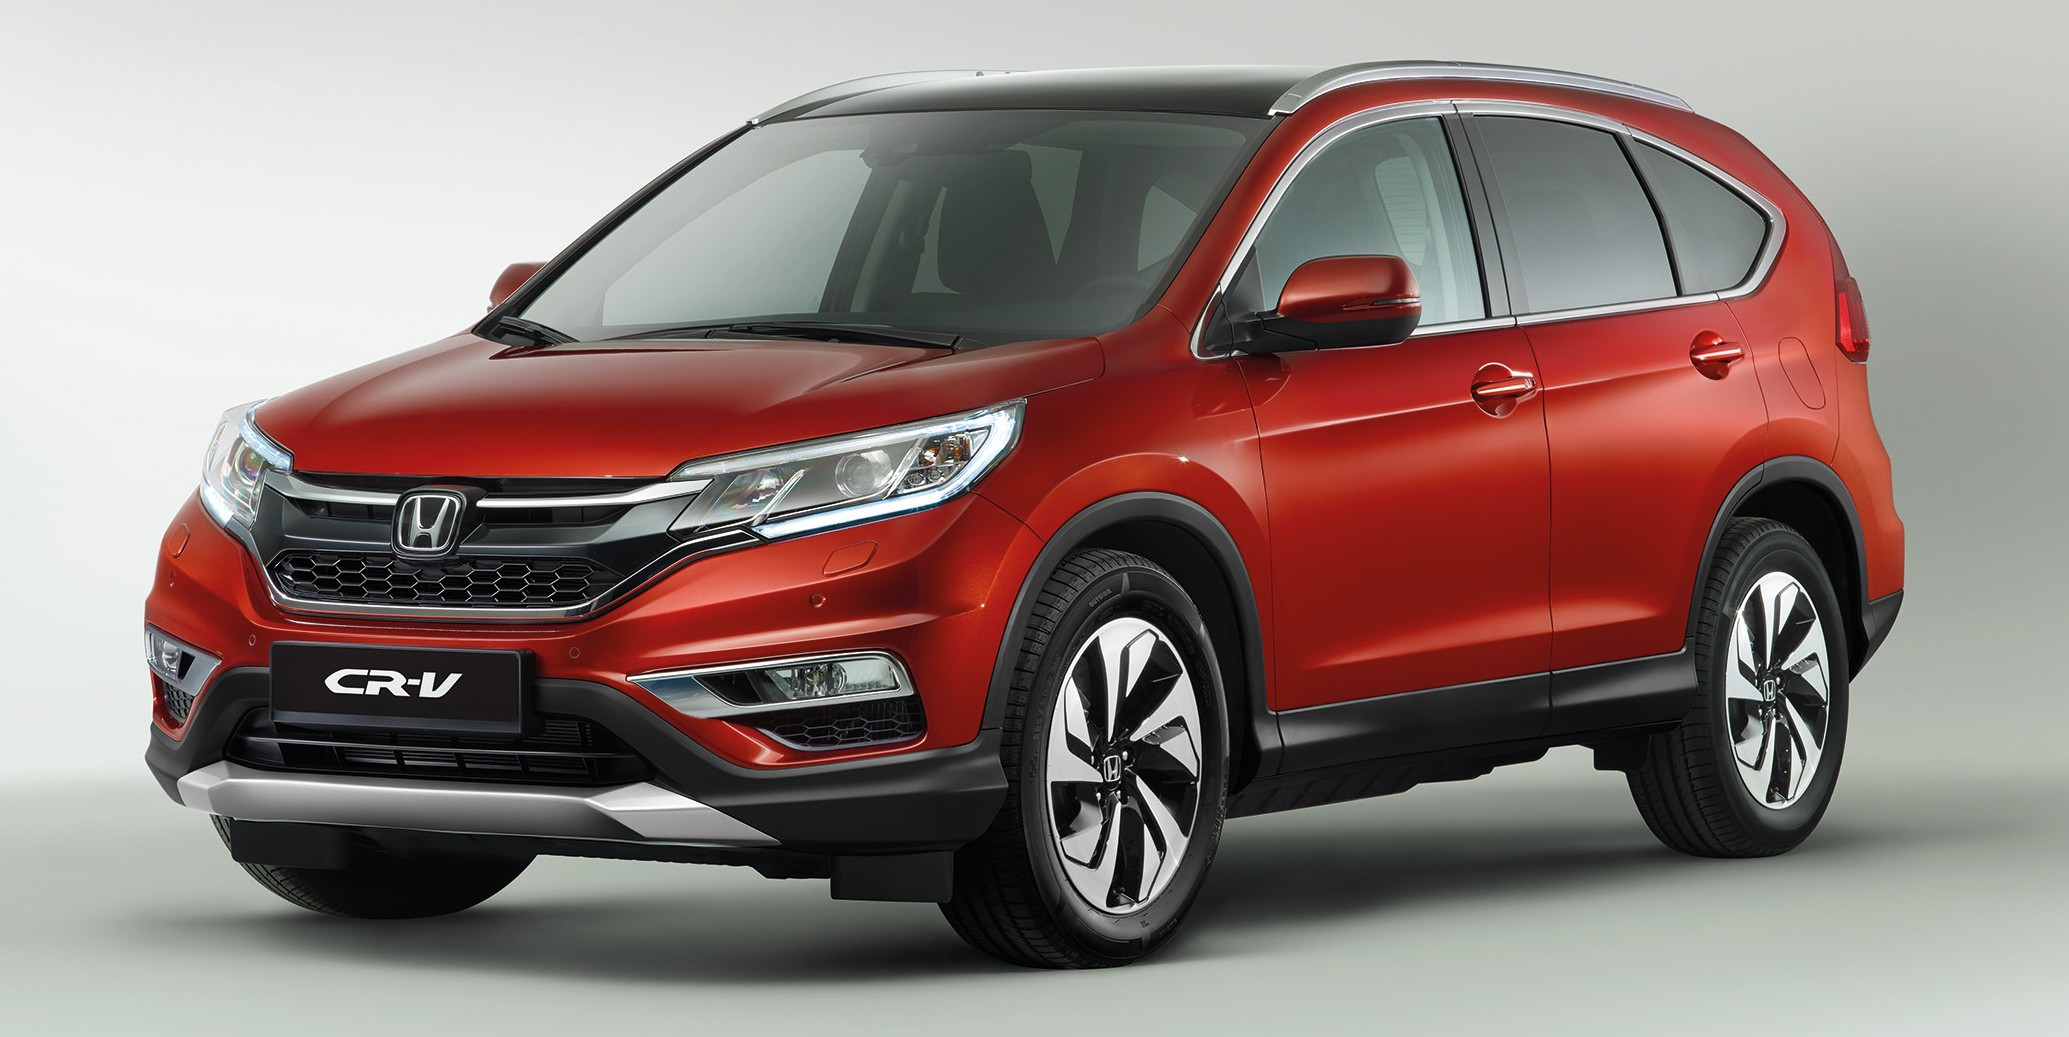 2015 honda cr v facelift europe gets 1 6 i dtec 9 spd auto. Black Bedroom Furniture Sets. Home Design Ideas